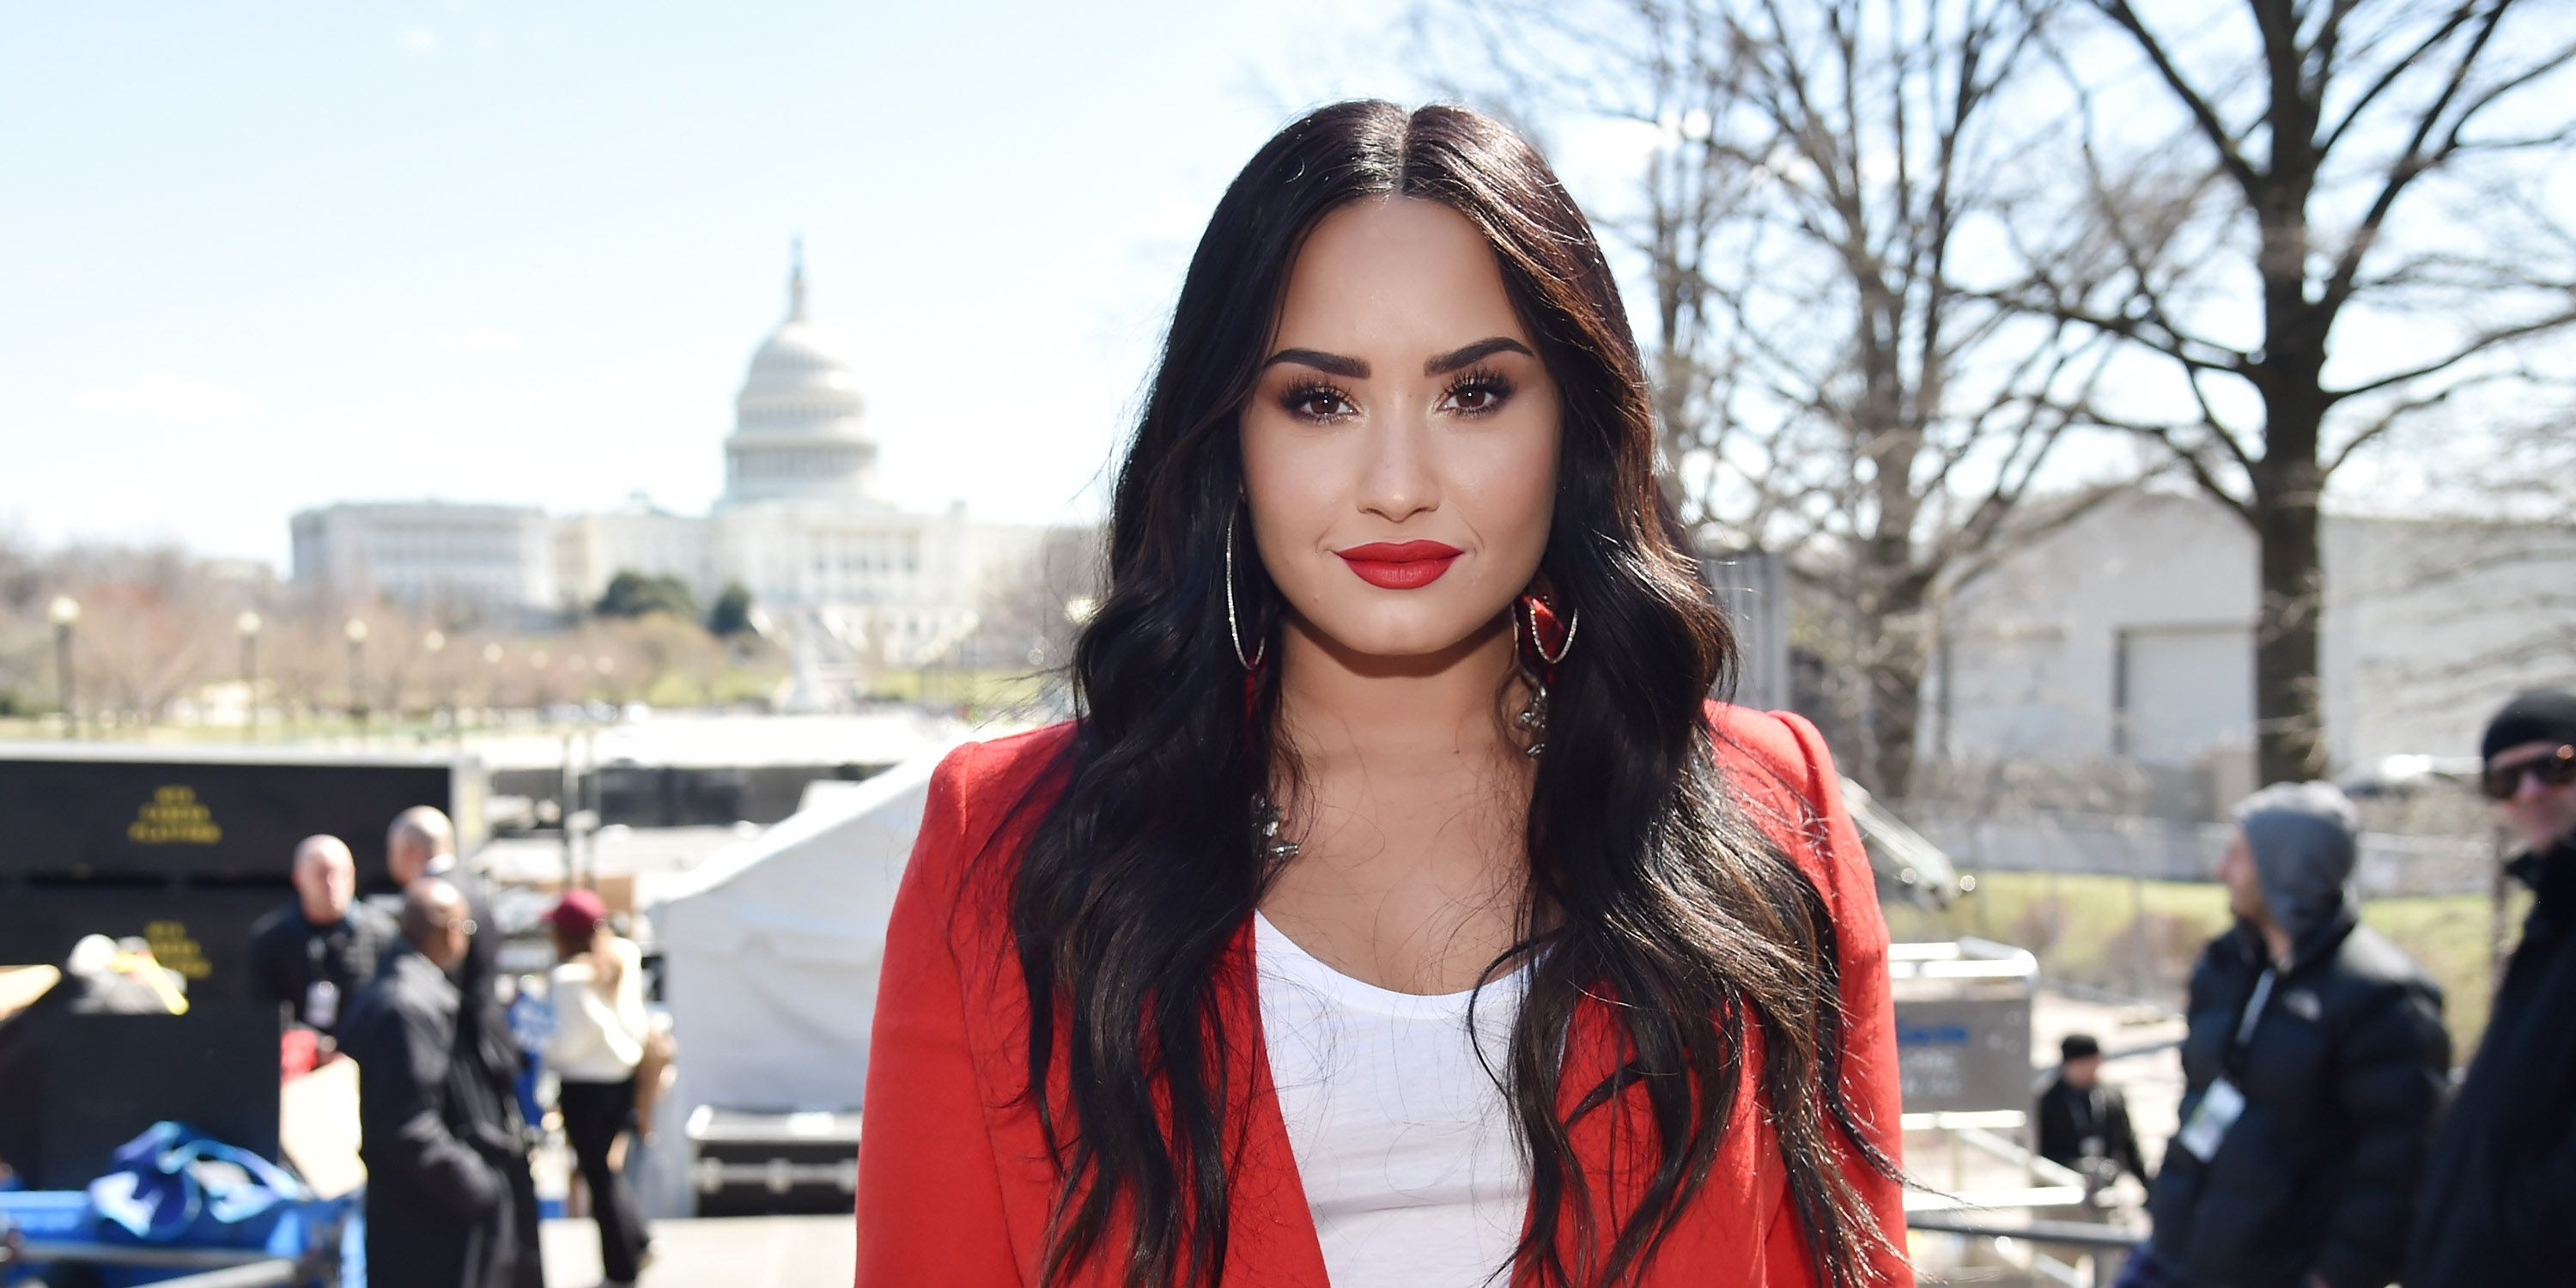 Demi Lovato Just Shared A Video Of Herself Knocking Out Her Trainer's Tooth